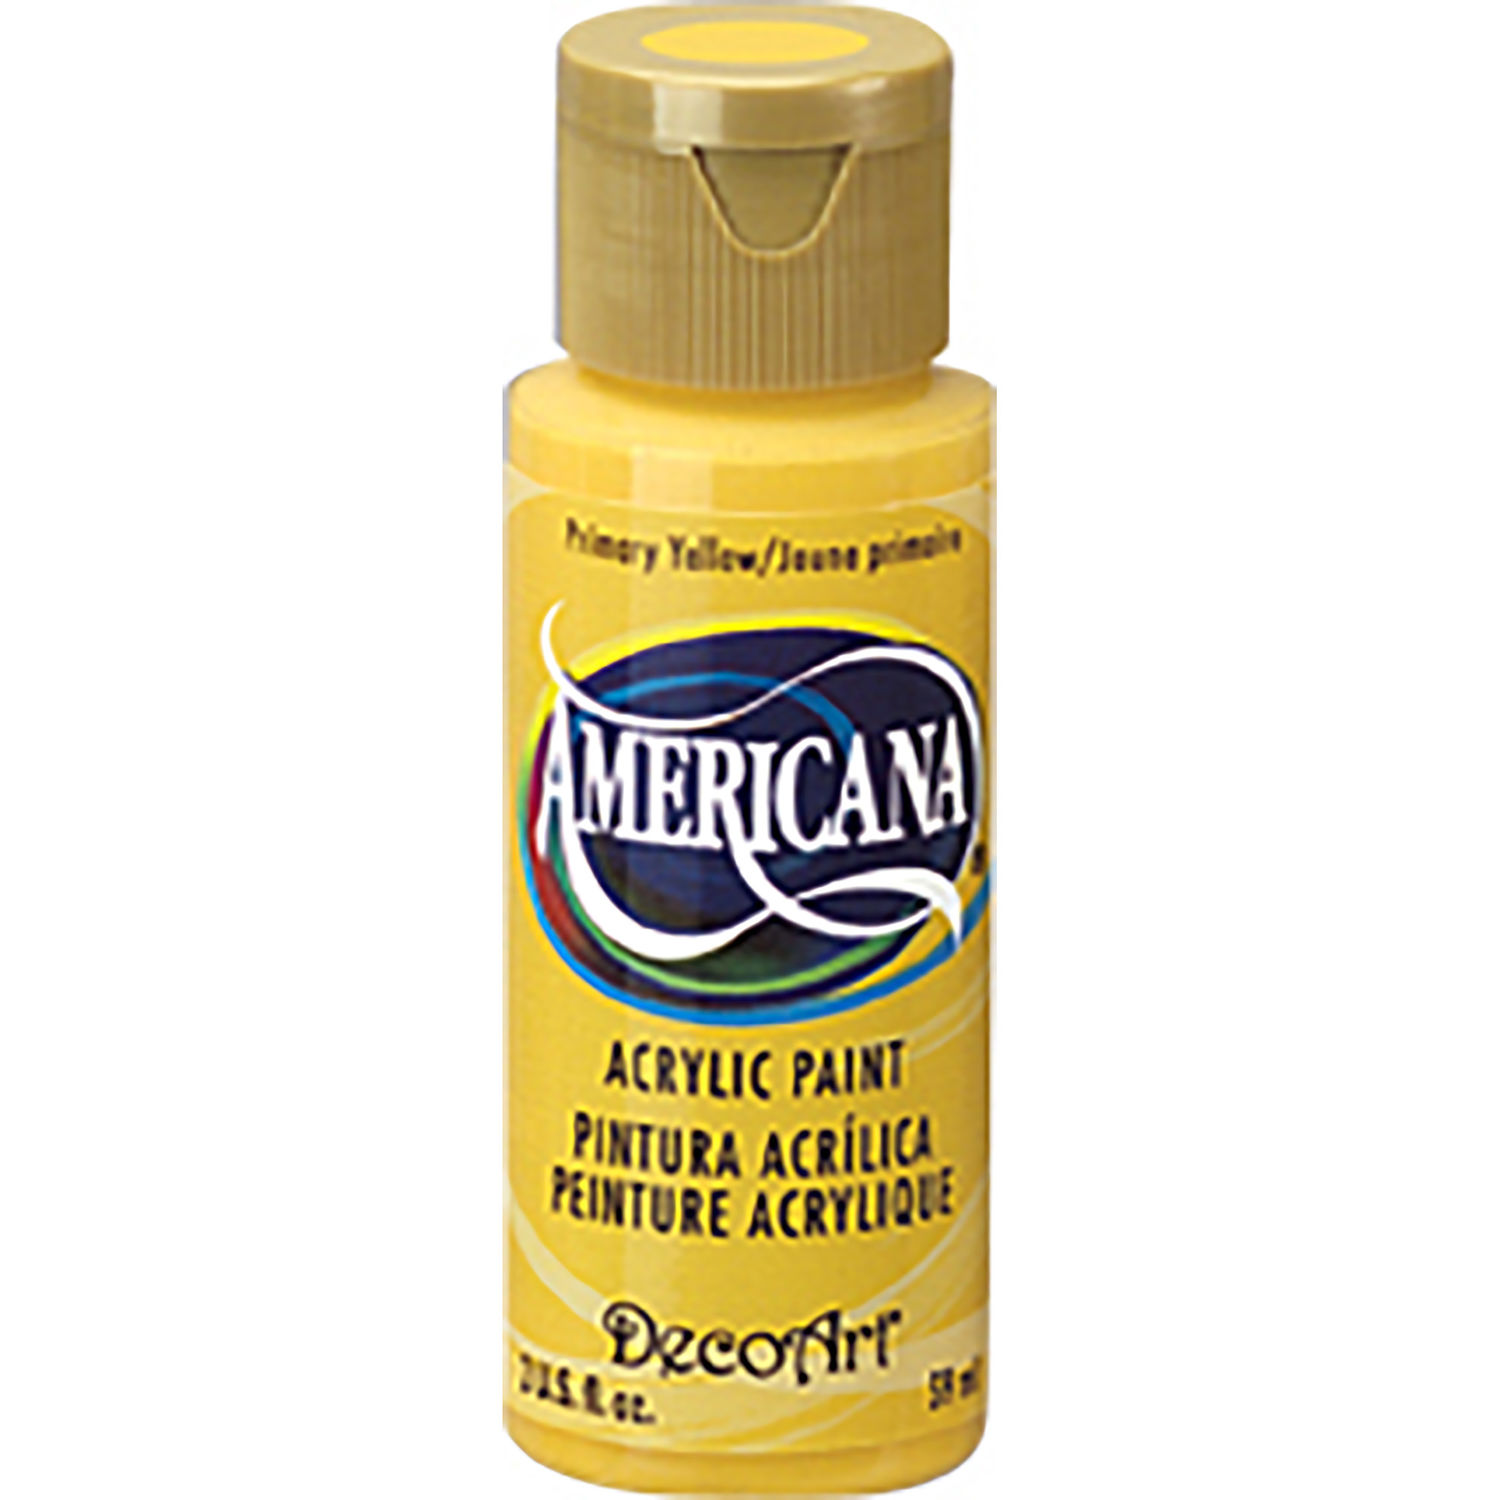 Americana Acrylic Paint - Primary Yellow